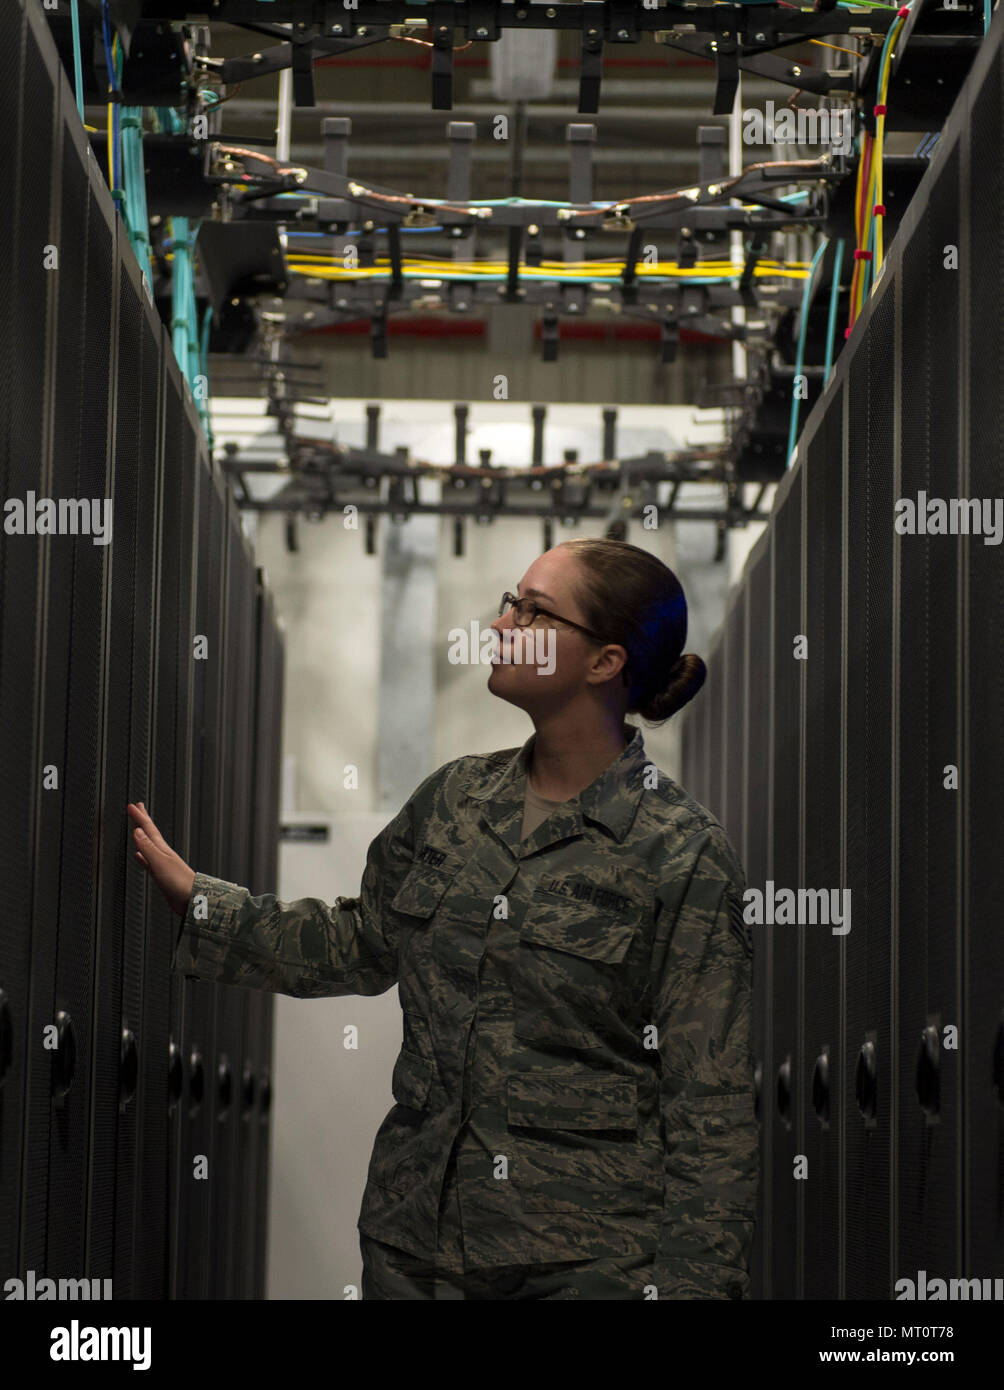 U.S. Air Force Staff Sgt. Shelby Carter, a network control center technician with the 379th Expeditionary Communication Squadron, checks the network servers for signs of problems at Al Udeid Air Base, Qatar, July 14, 2017. Carter is part of a team of Airmen that are responsible for installing and supporting all network servers by ensures they are operational and secure from outside intrusion. (U.S. Air Force photo by Tech. Sgt. Amy M. Lovgren) - Stock Image